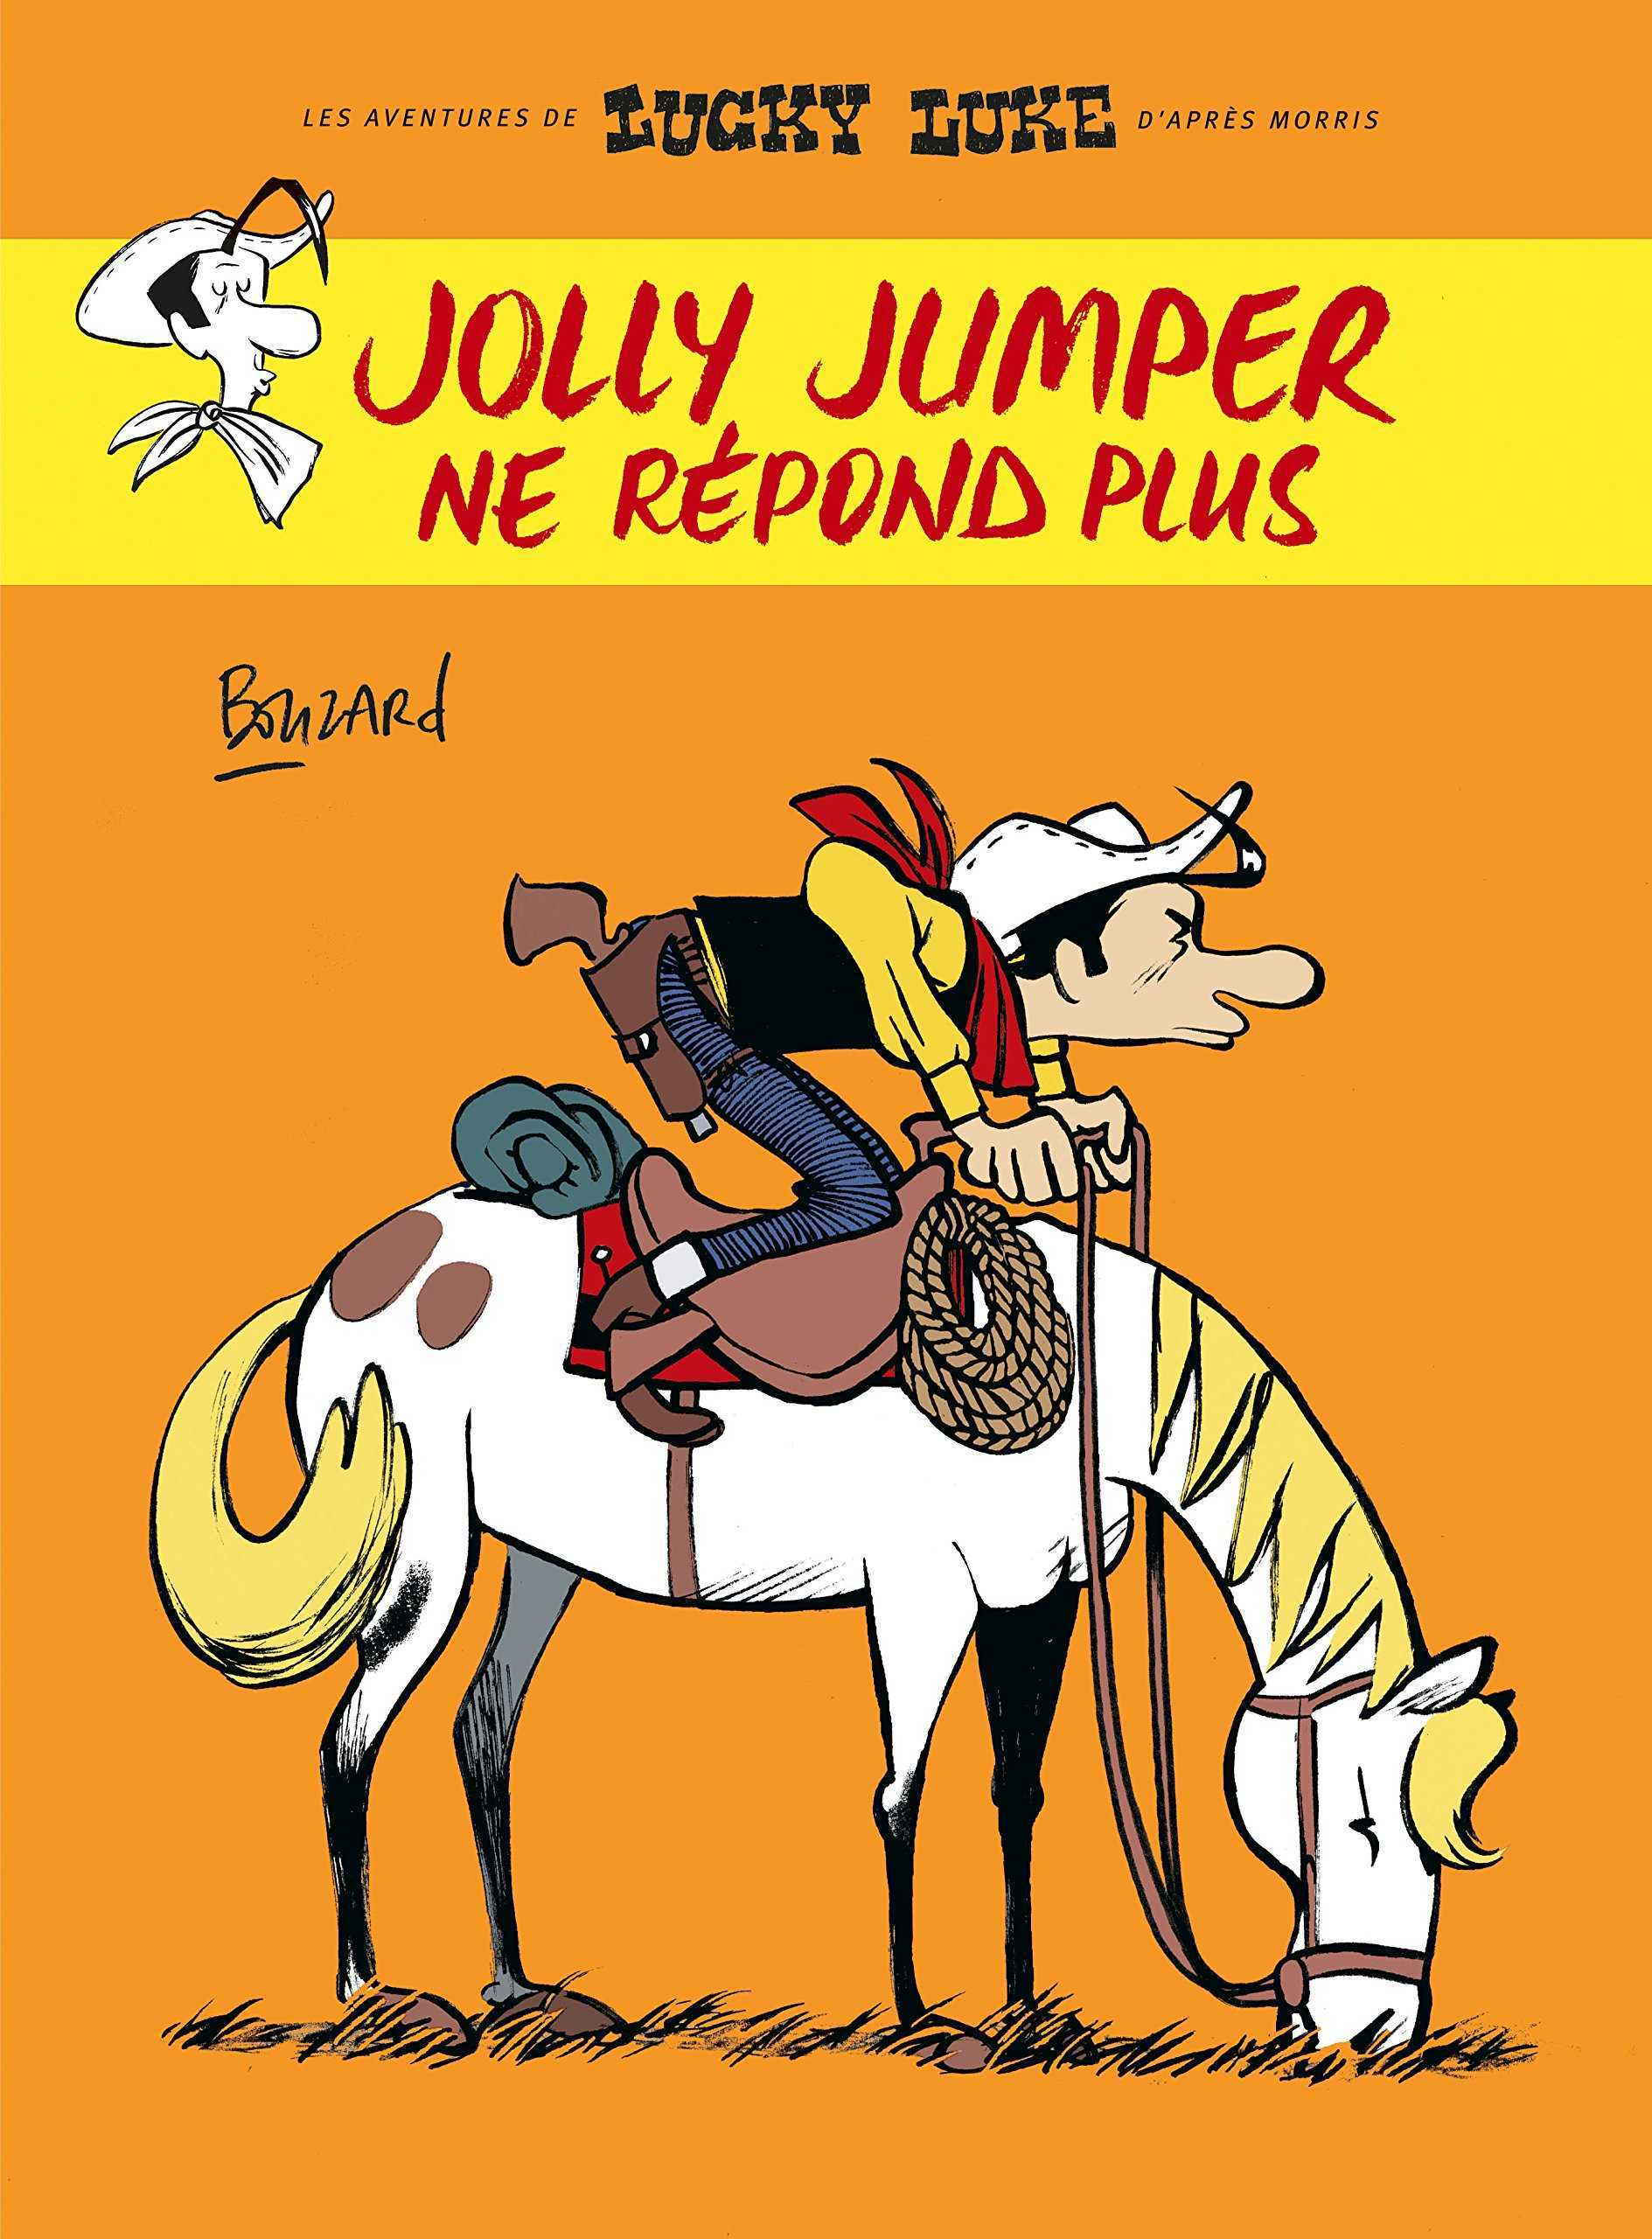 Jolly Jumper ne répond plus, Lucky Luke en mal d'affection